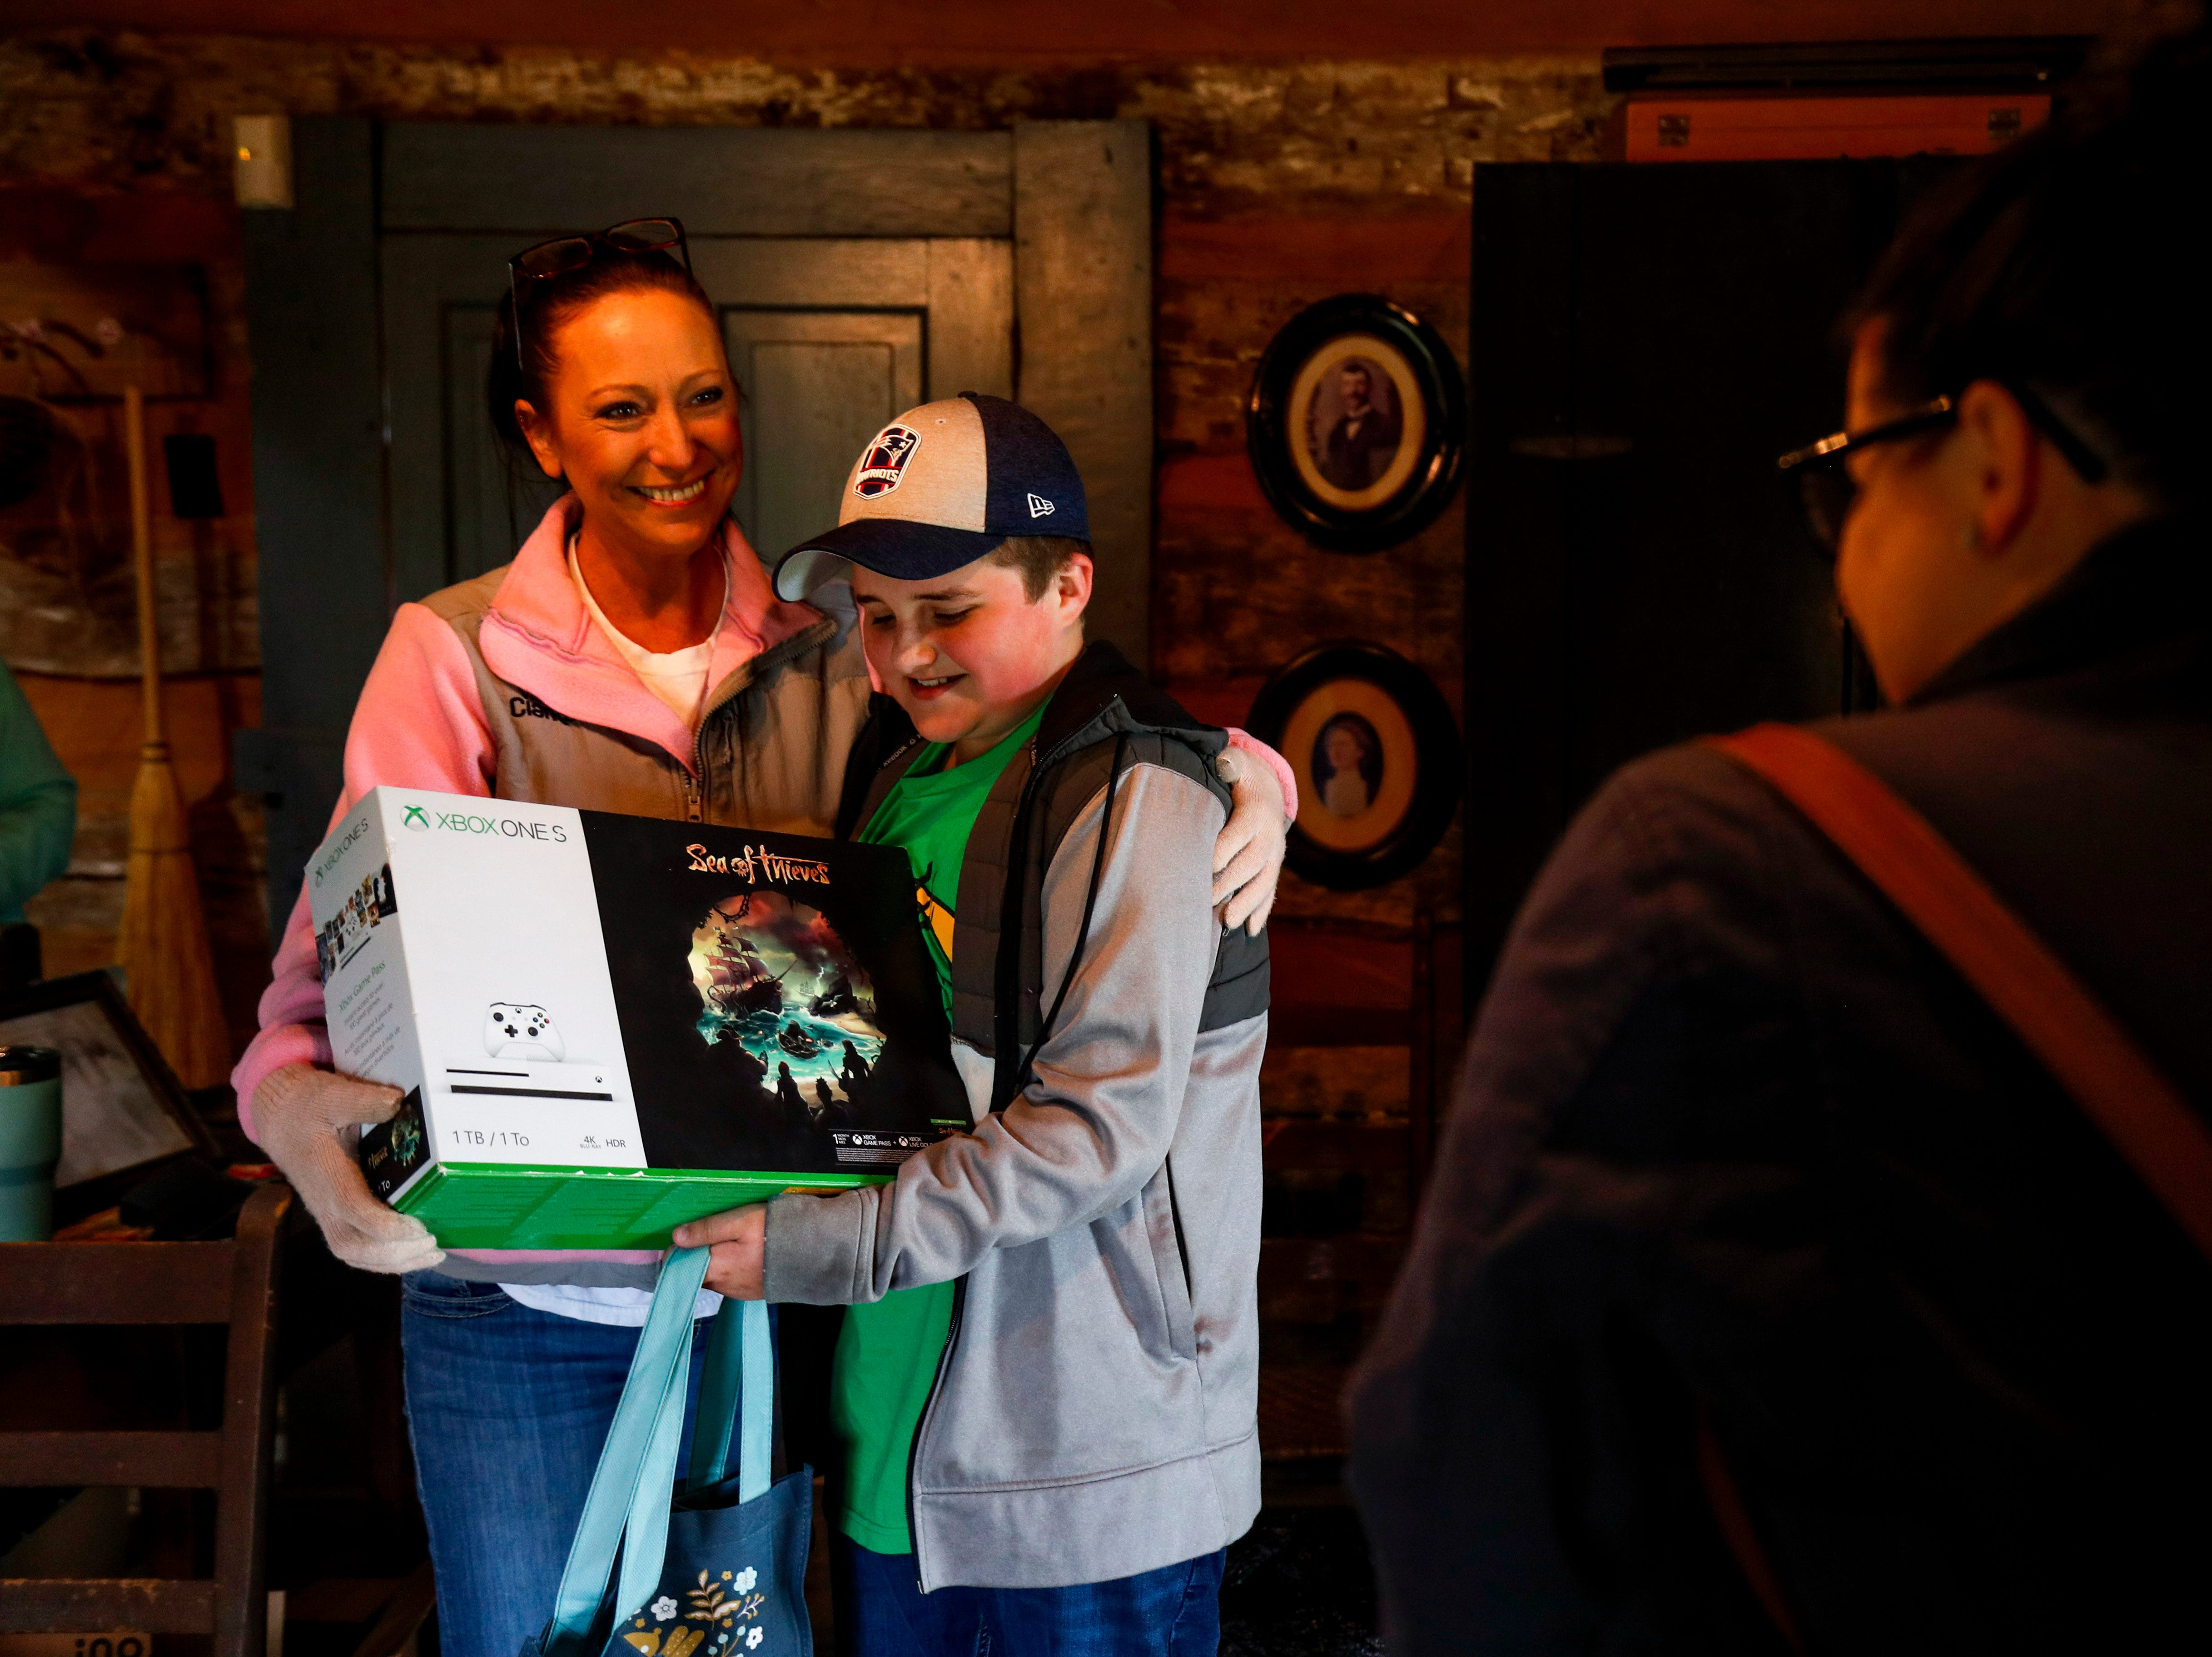 Jessica Workman, right, snaps a photo of her son Slate Workman, center, and Linda Ebel, left, with his prize for finding the golden egg at the annual Easter egg hunts at Historic Collinsville in Clarksville, Tenn., on Saturday, April 20, 2019.